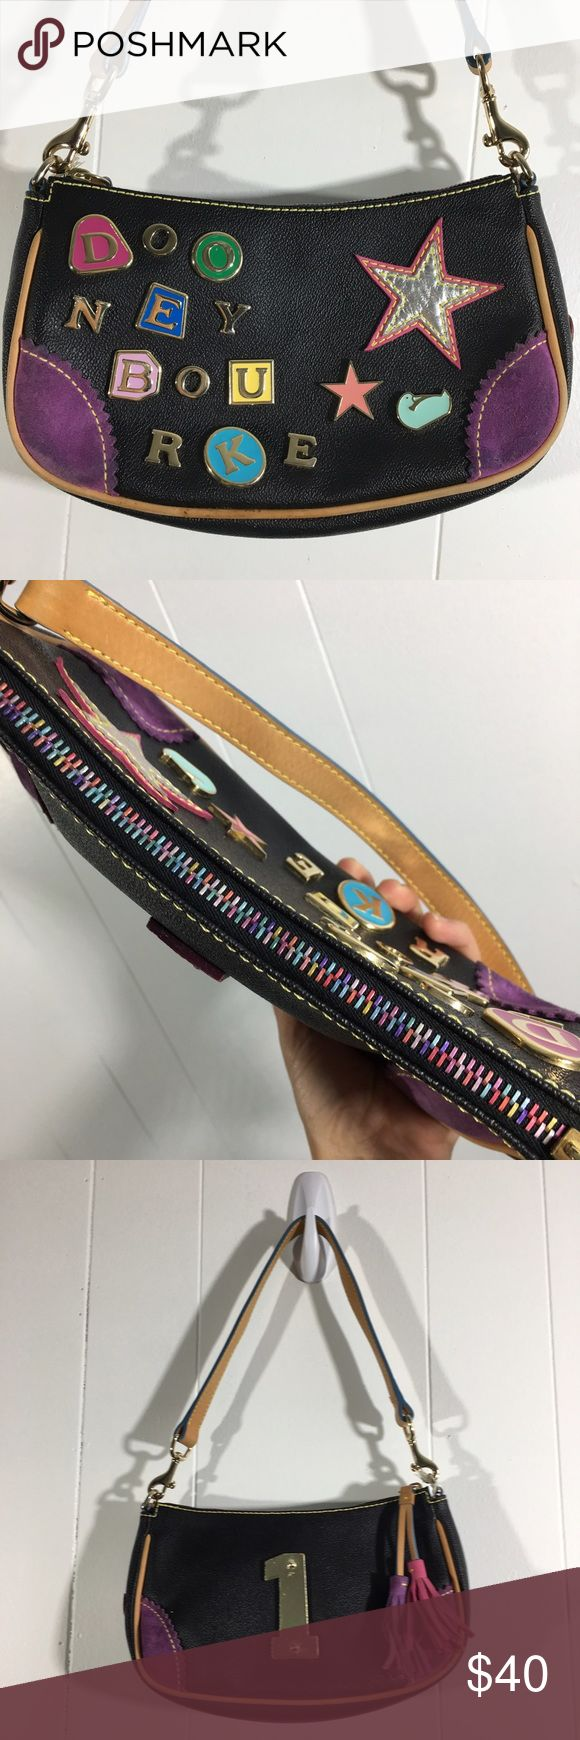 "Dooney and Bourke crescent zip top Lindsay Lohan 1 Sold as is please see photos❗️❗️❗️❗️Authentic original price $195. Rainbow zipper. A little discoloration on the inside and on Suede corners. 9.5"" by 6"" by 3"". Removable strap 21"" long. Strap drop 10"". One inside slide pocket was made for an early 2000s phone and one inside zipper pocket 4"" deep and 7"" wide. Although this purse is new with tags it definitely has some wear since it is maybe 15 years old. Dooney & Bourke Bags Shoulder Bags"